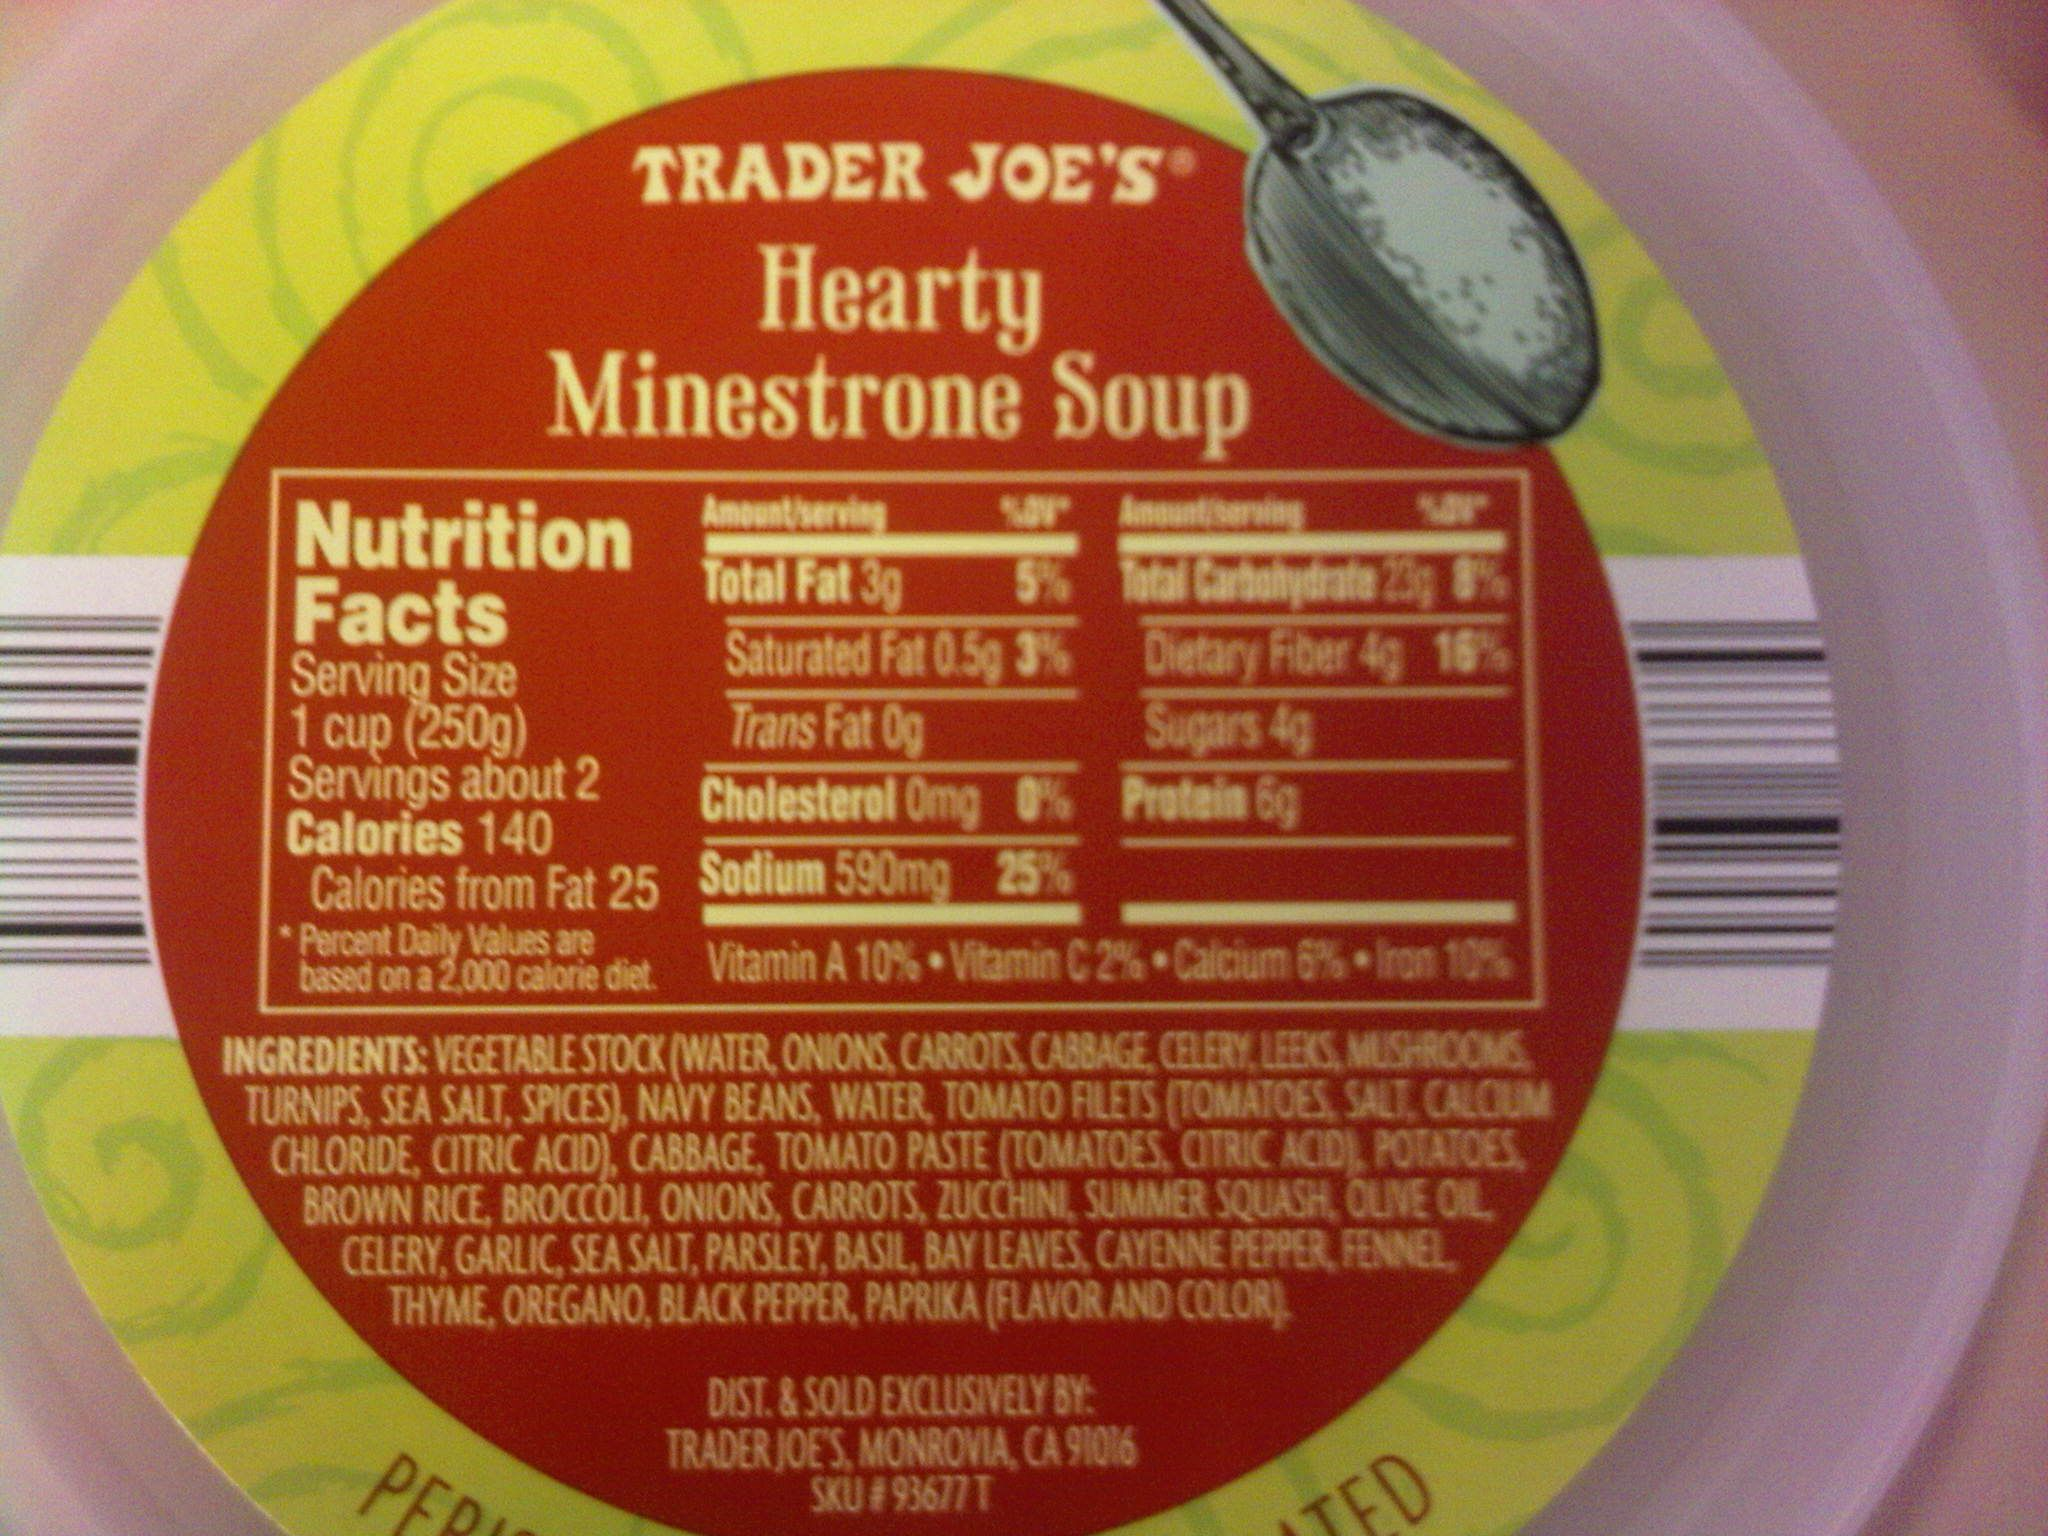 Nutrition Facts On Trader Joes Hearty Minn Soup Baked Chicken Recipes Healthy Food Facts Food Network Recipes